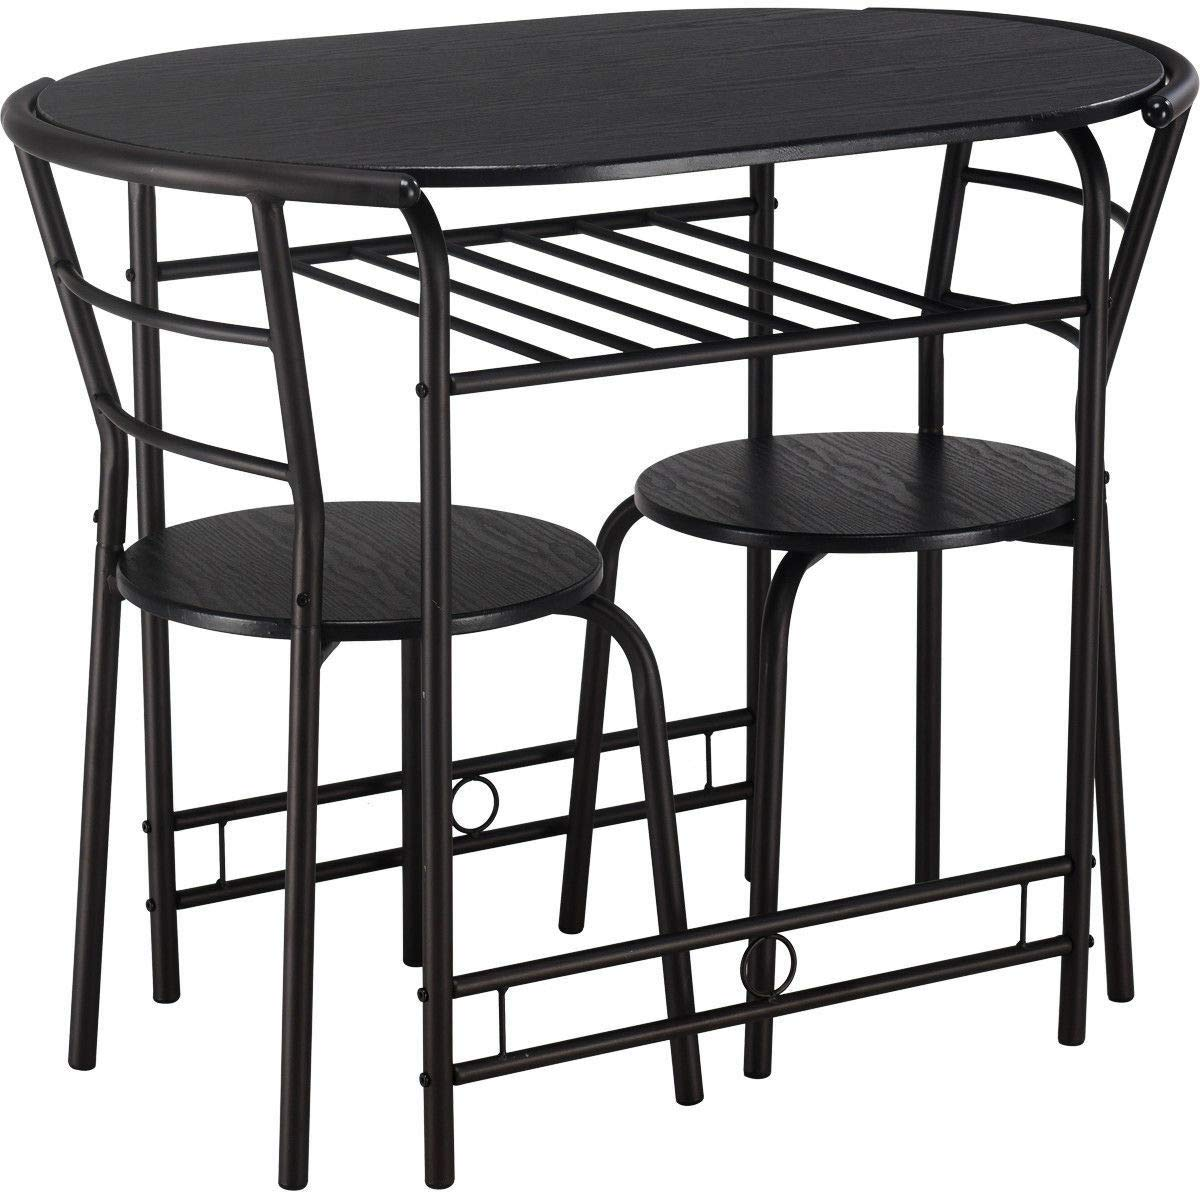 3 Piece Dinette Set Bistro Table and 2 Chairs in Black Finish with Wine Rack